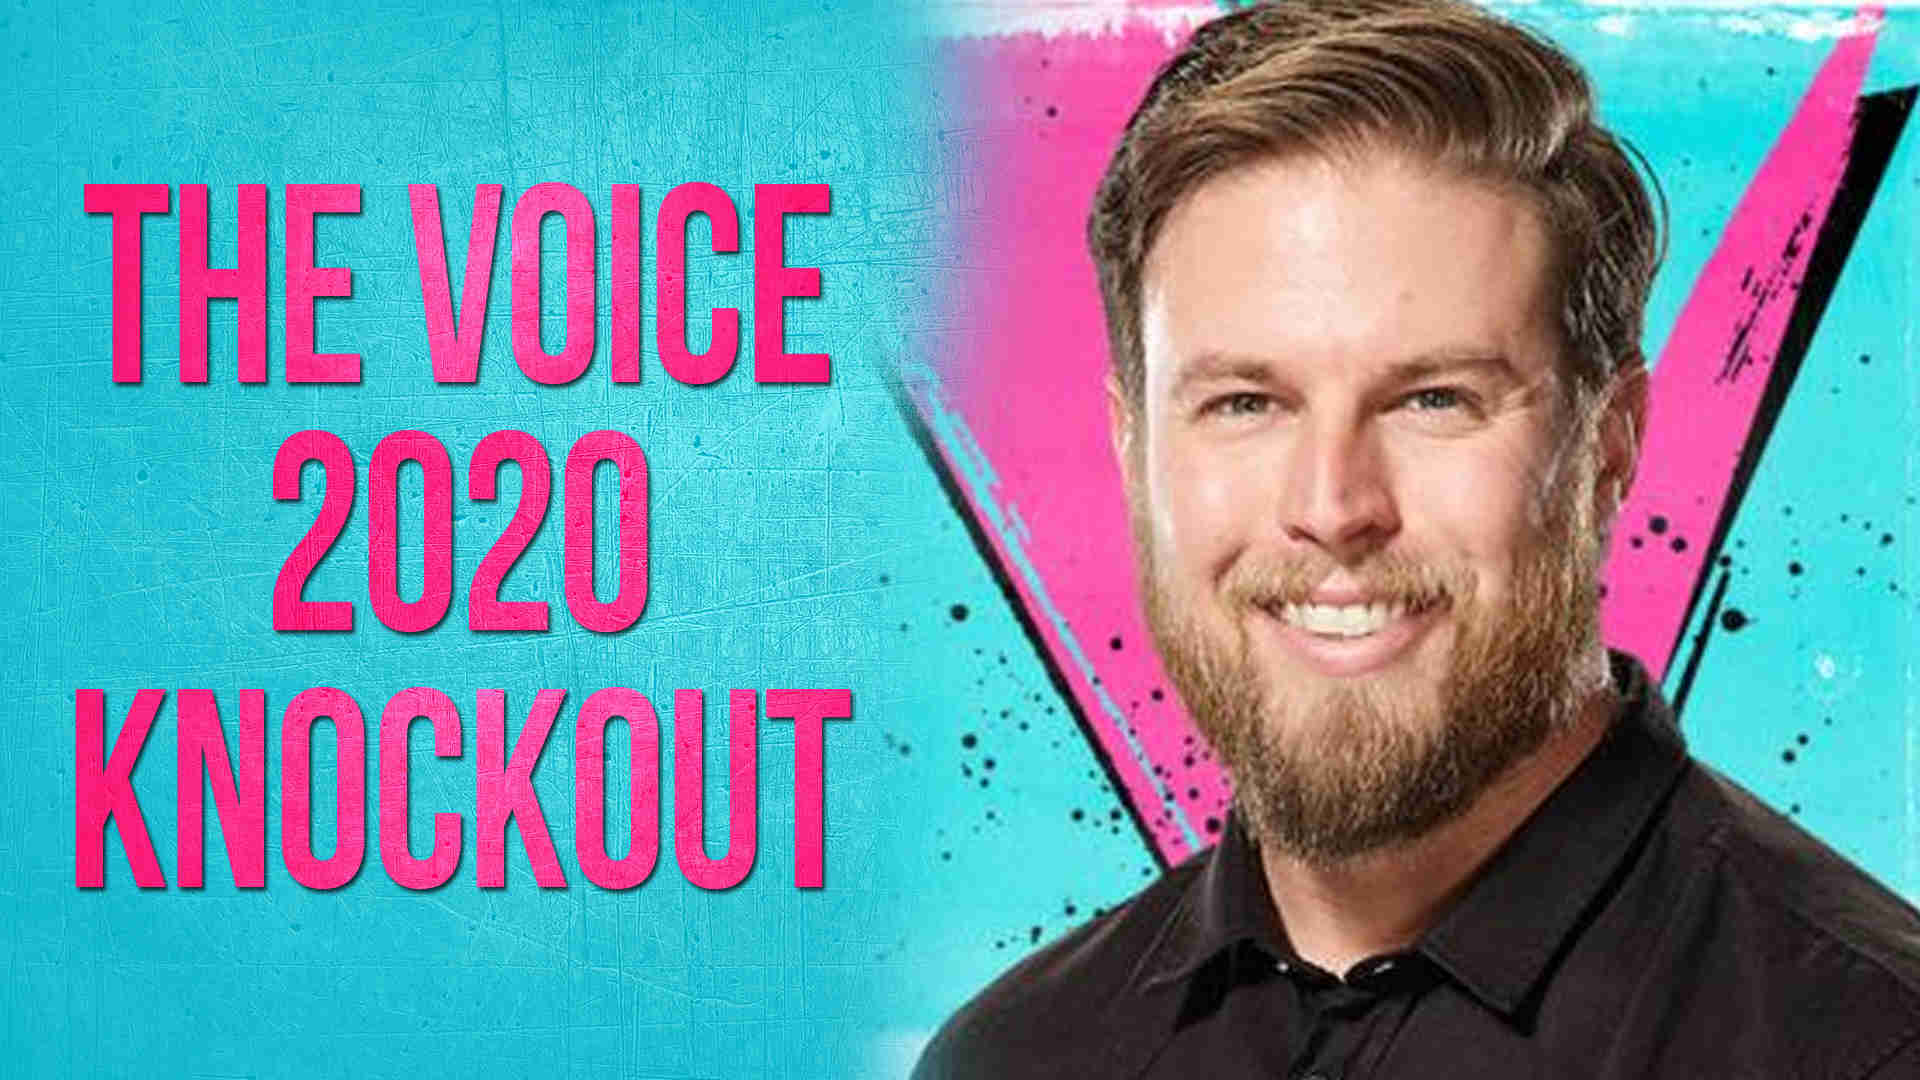 Vote Cam Spinks The Voice USA 2020 Knockout Performance Tonight on 13 April 2020